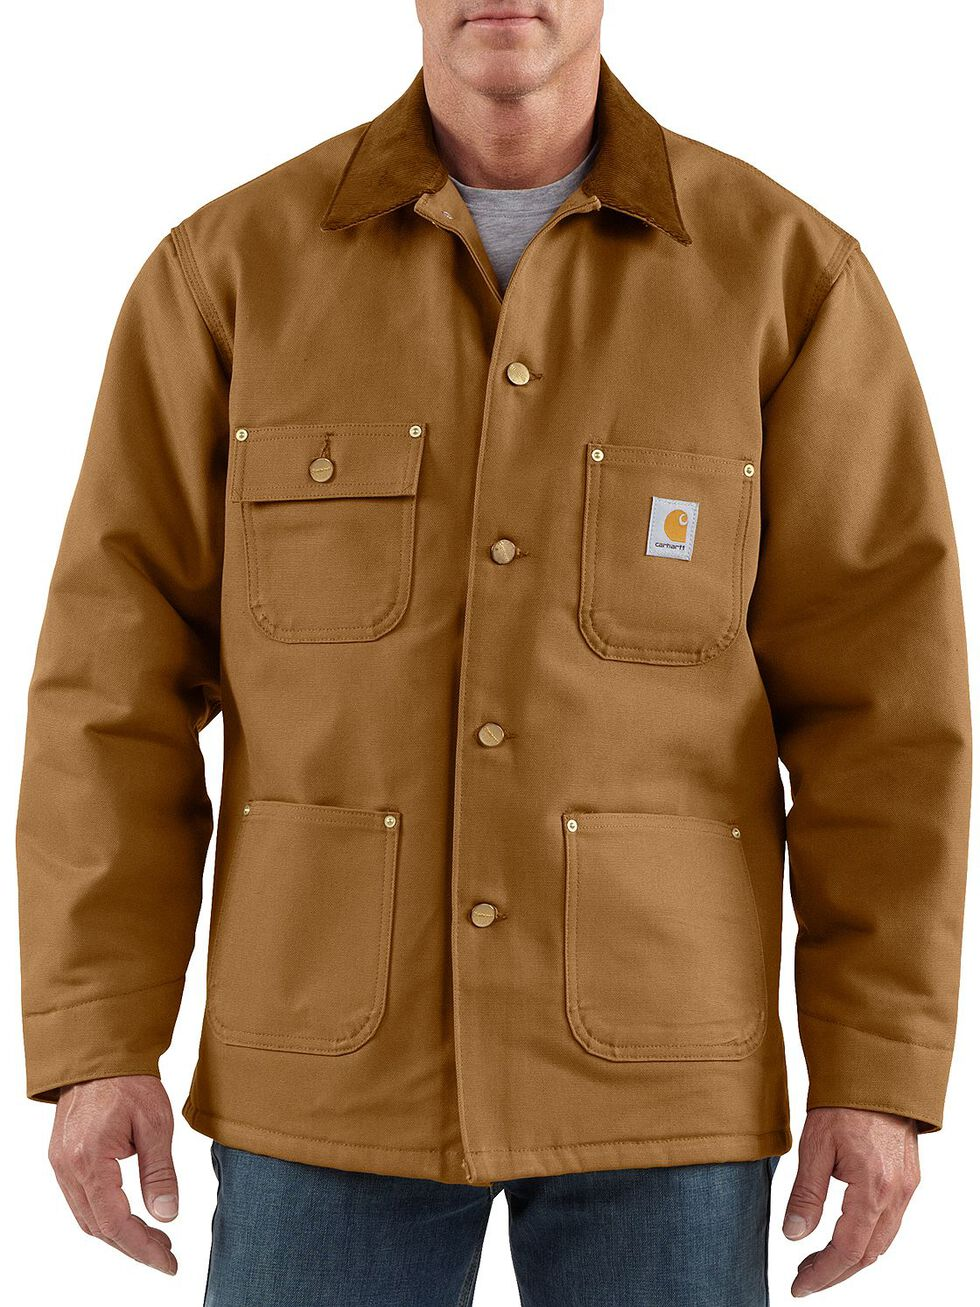 Carhartt Duck Chore Coat, Brown, hi-res